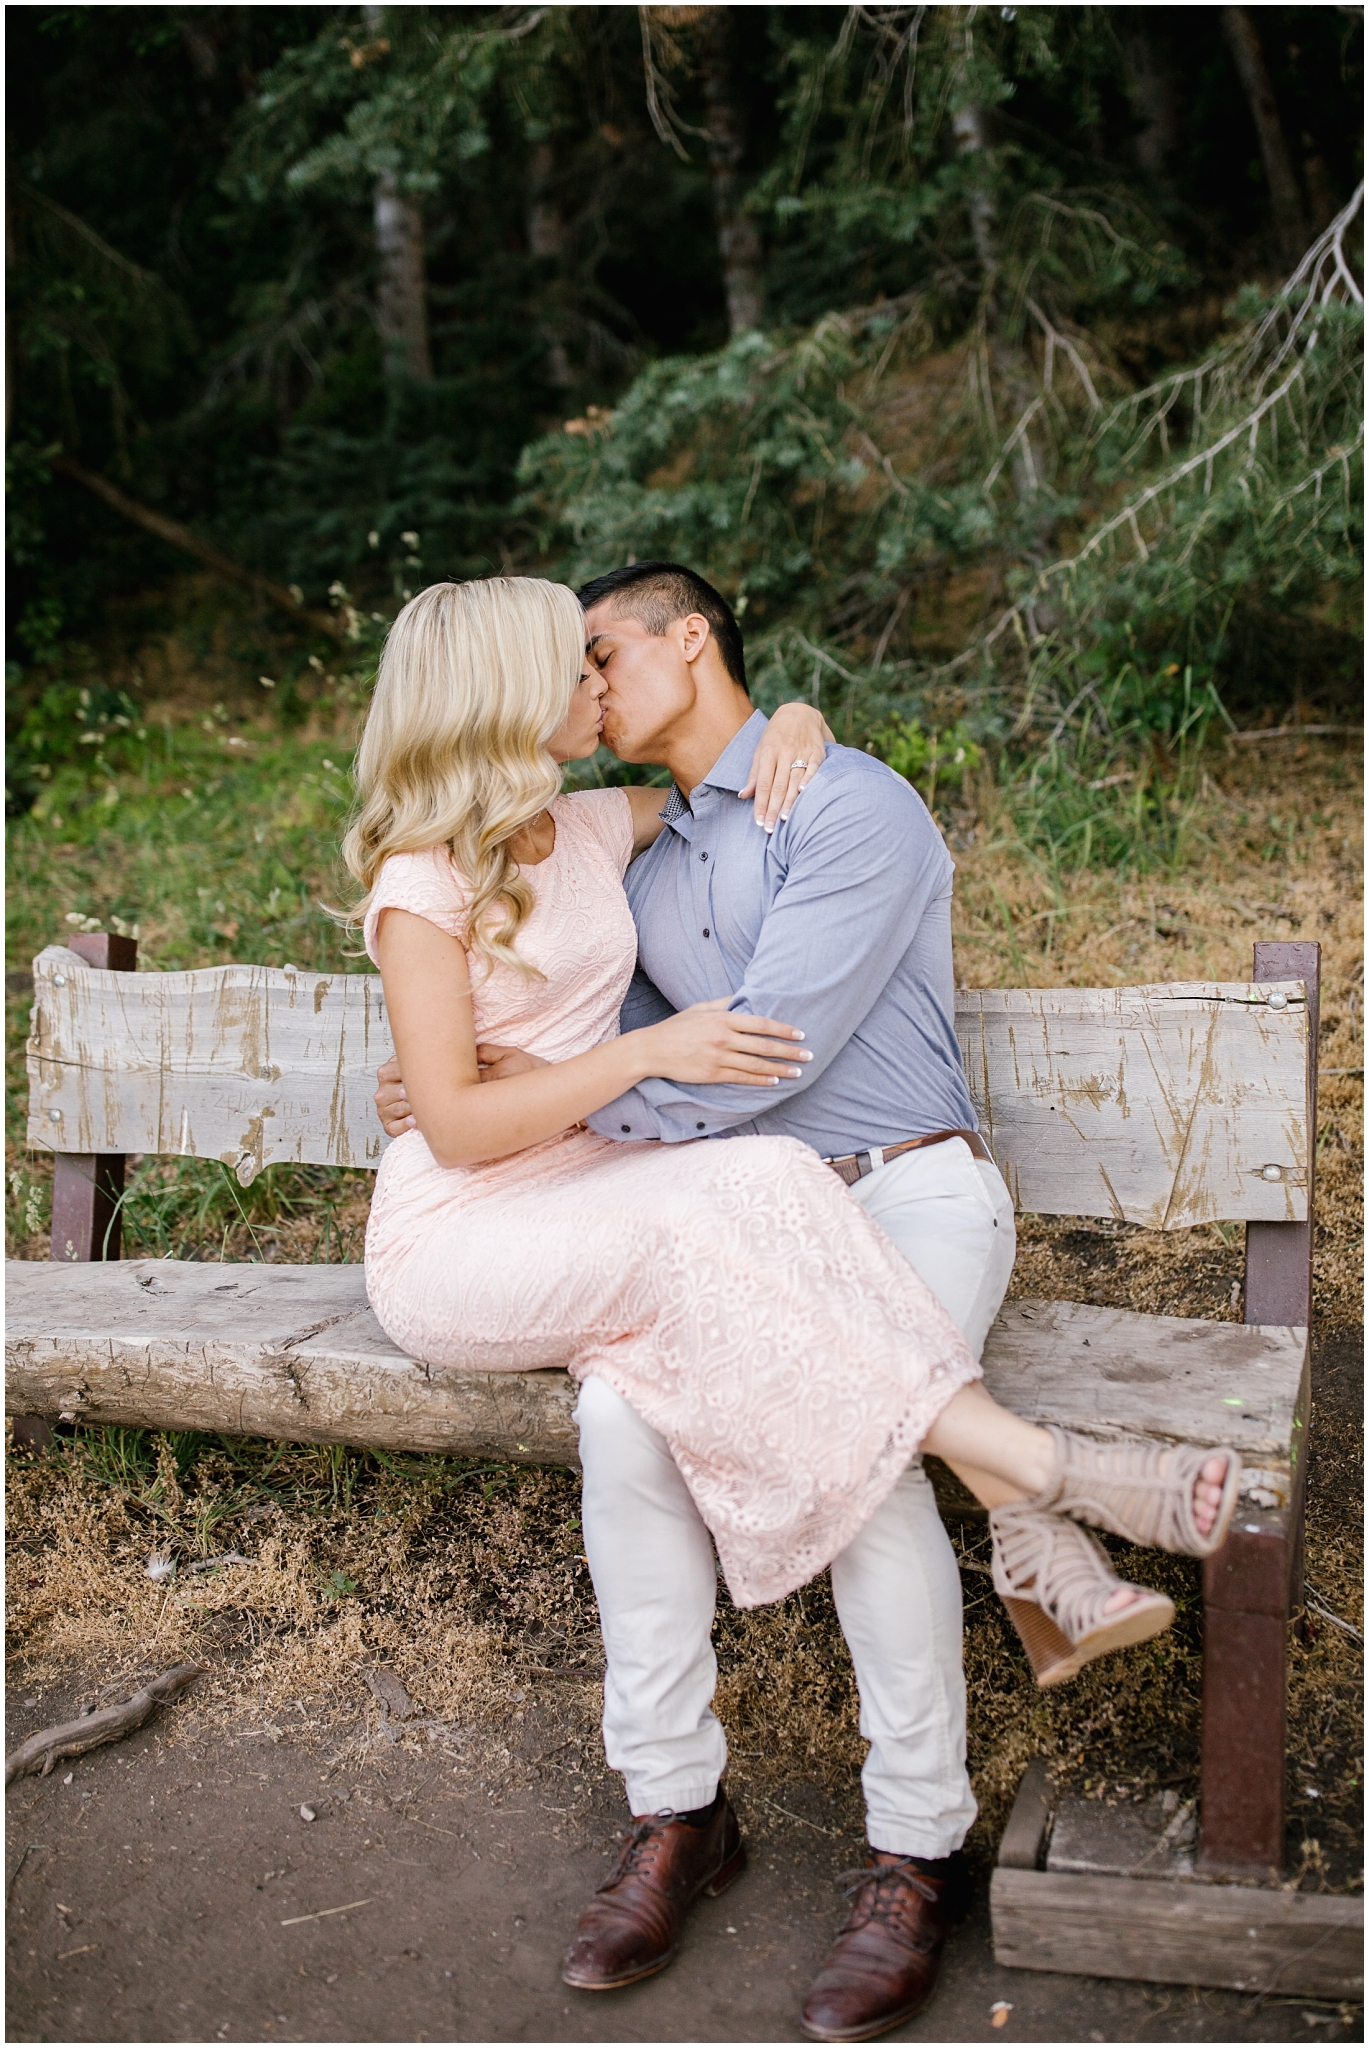 HCengagements-119_Lizzie-B-Imagery-Utah-Wedding-Photographer-Park-City-Salt-Lake-City-Payson-Canyon-Engagement-Session.jpg